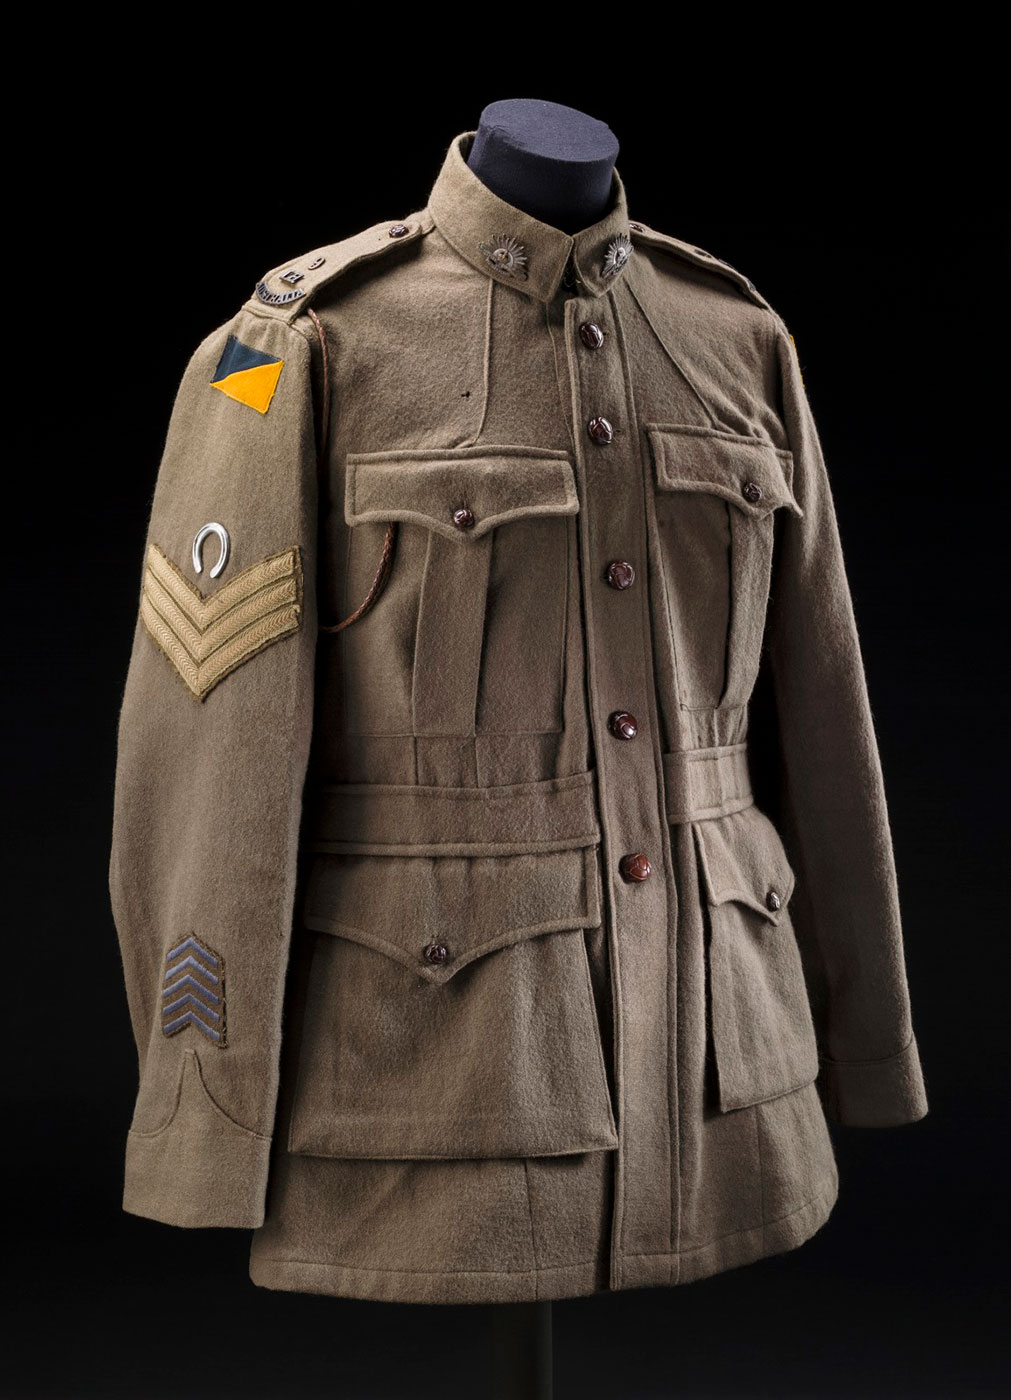 Khaki jacket with buttons down the front, four front pockets, and various patches on the sleeve.  - click to view larger image